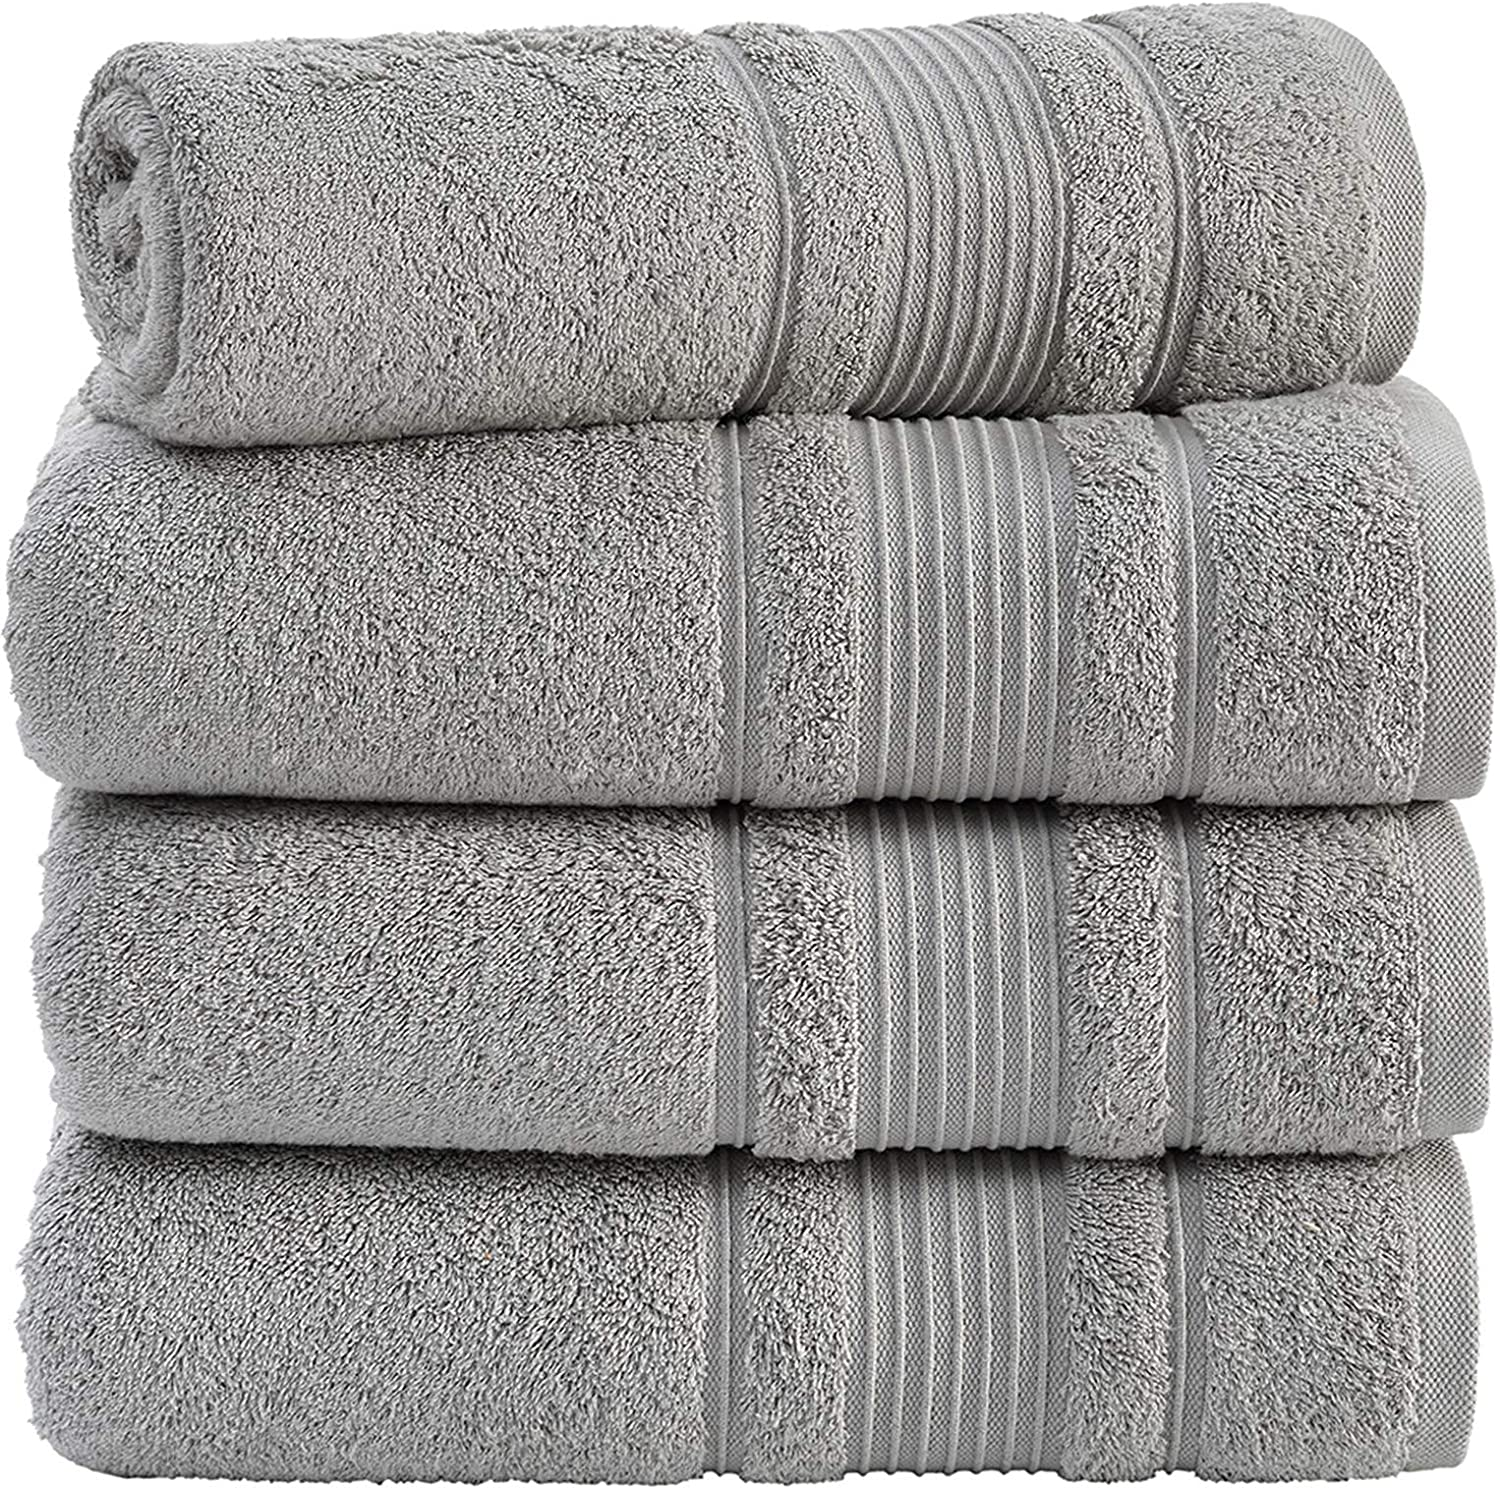 Qute Home 100% Turkish Cotton Bath Towels (27 x 52 inches) 4 Pieces Towel Set, Grey